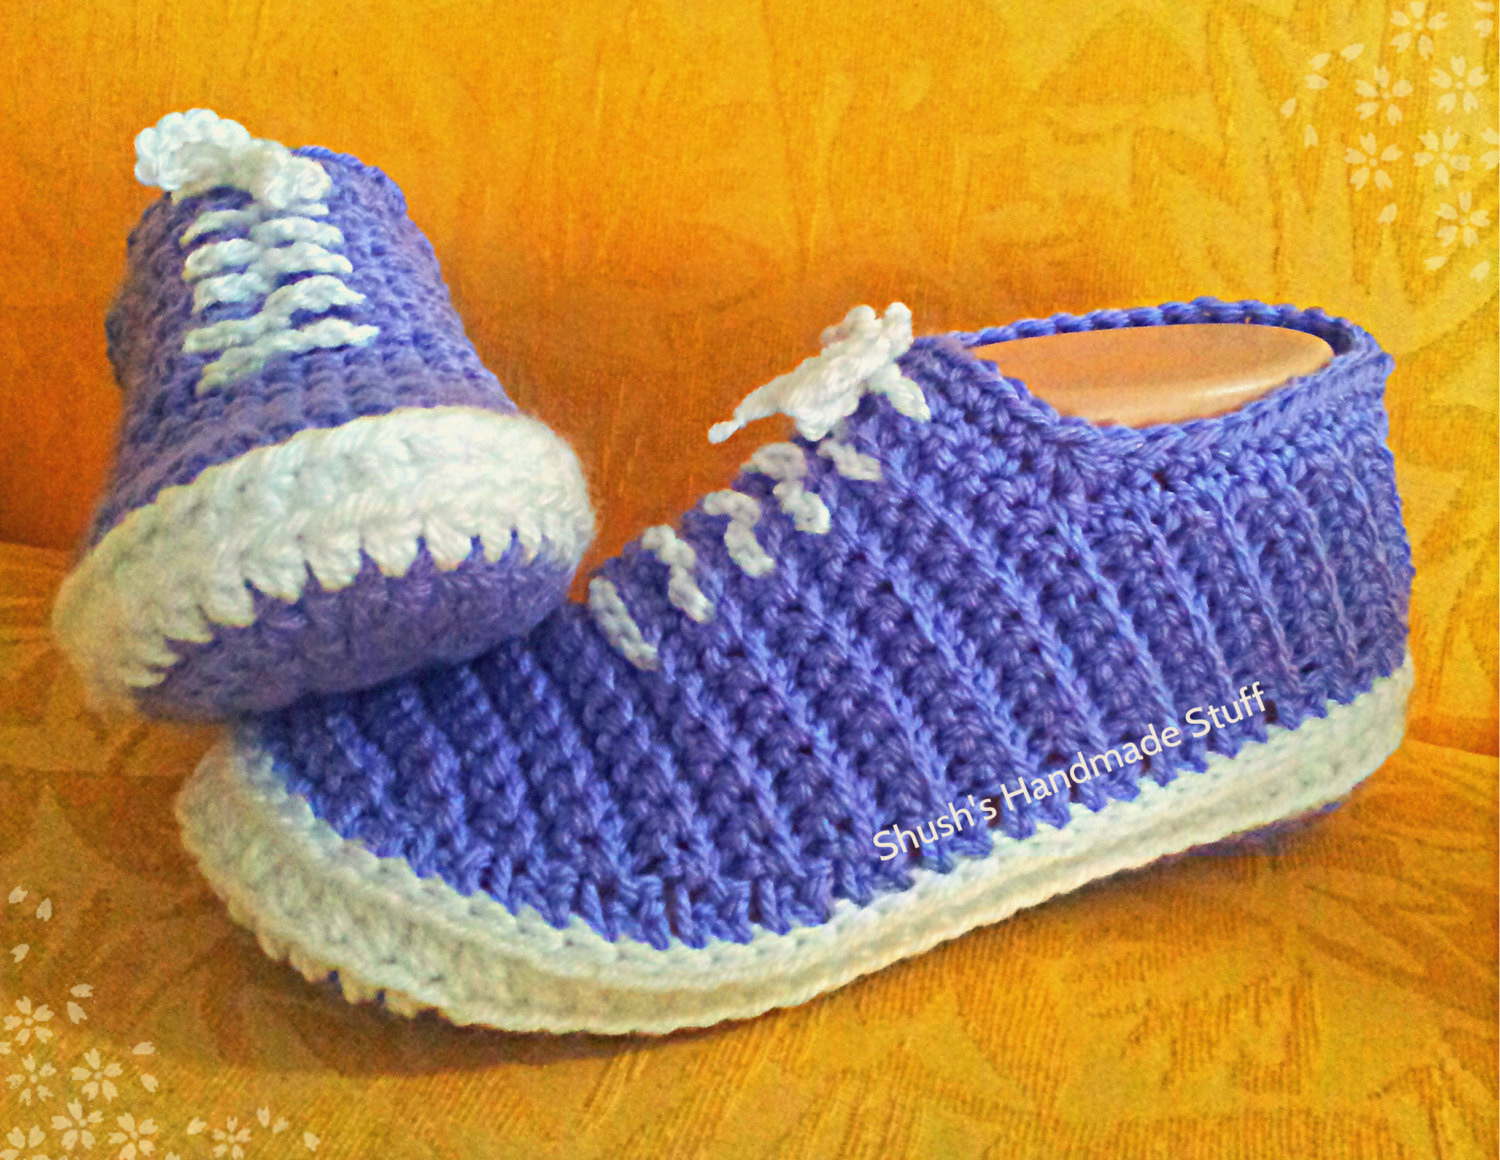 Crochet Sneakers New Crochet Sneakers Pattern In English Only Of Gorgeous 50 Pics Crochet Sneakers